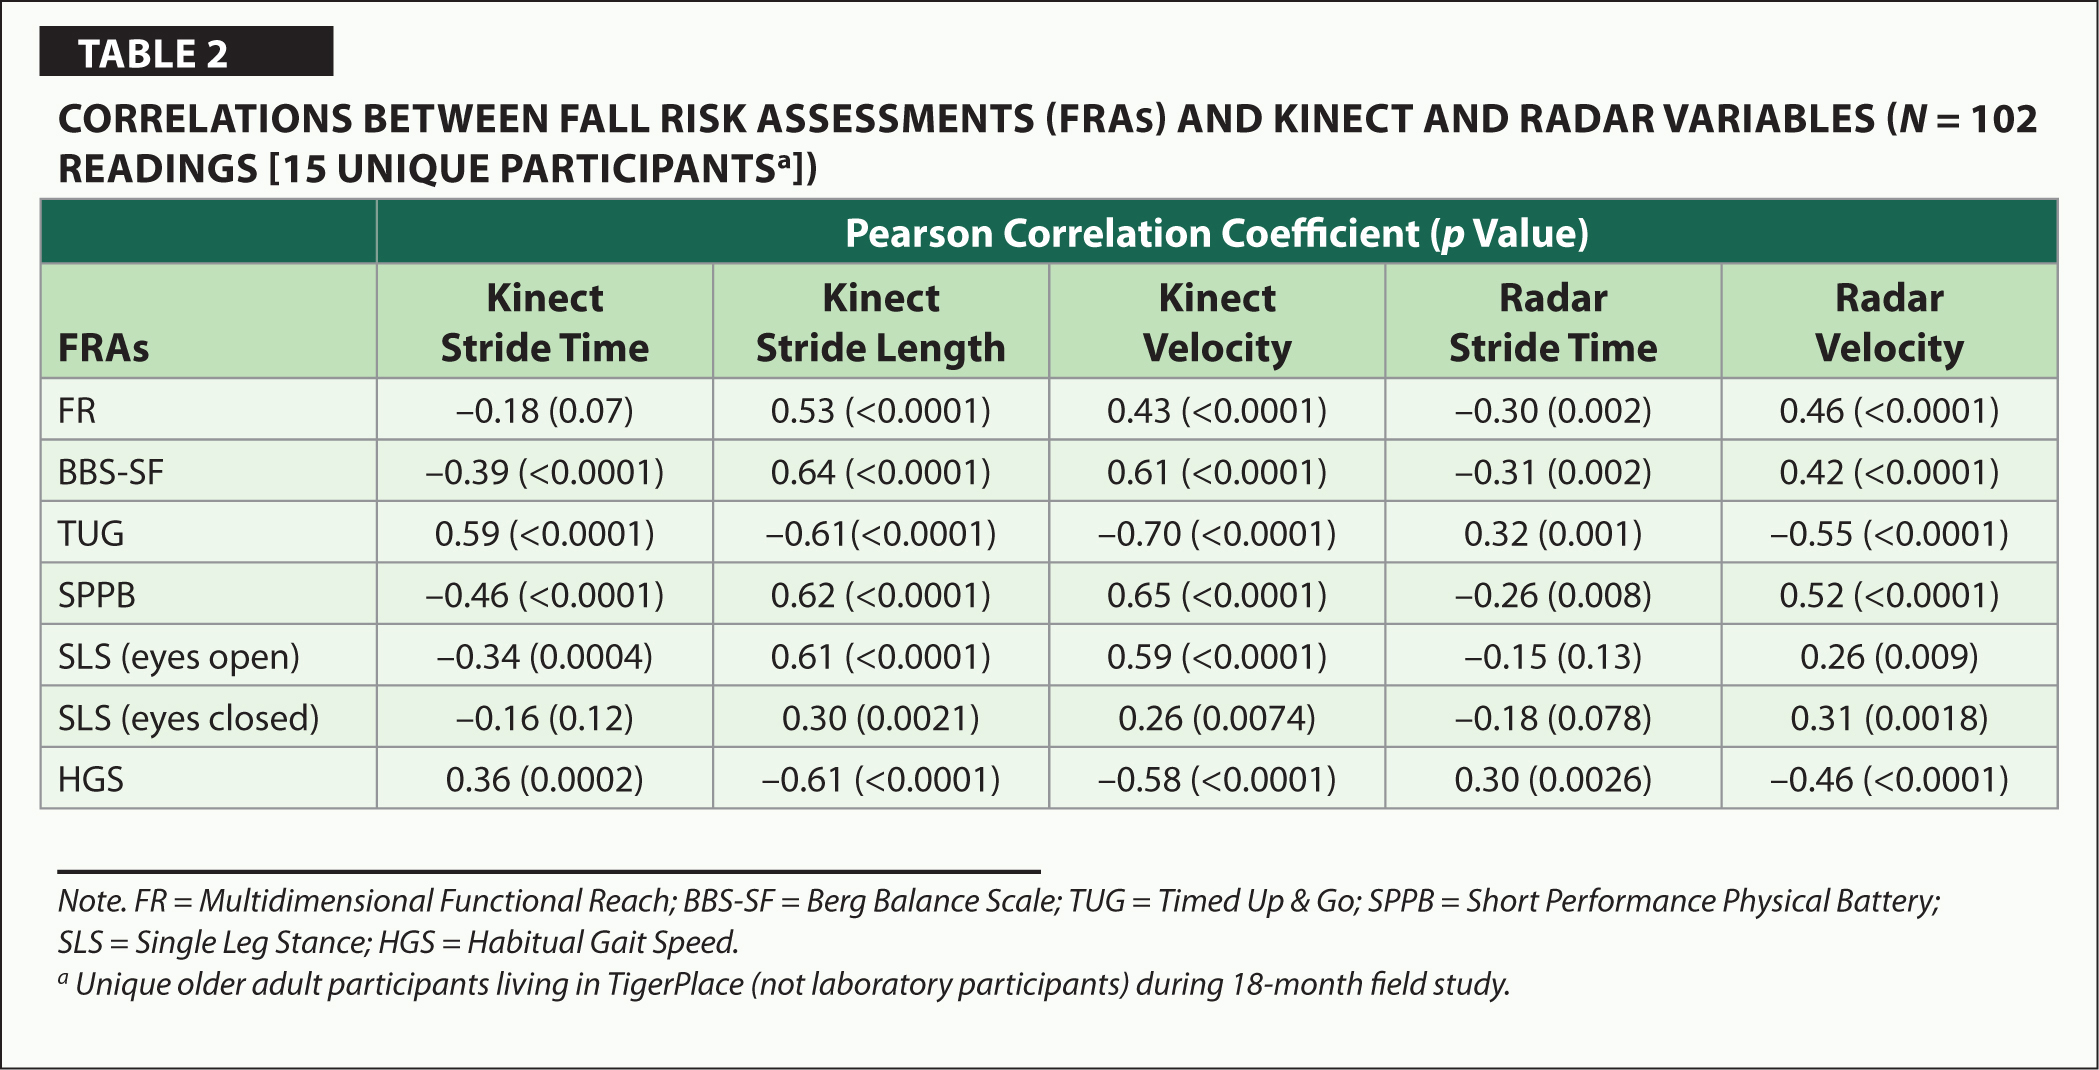 Correlations Between Fall Risk Assessments (FRAs) and Kinect and Radar Variables (N = 102 Readings [15 Unique Participantsa ])